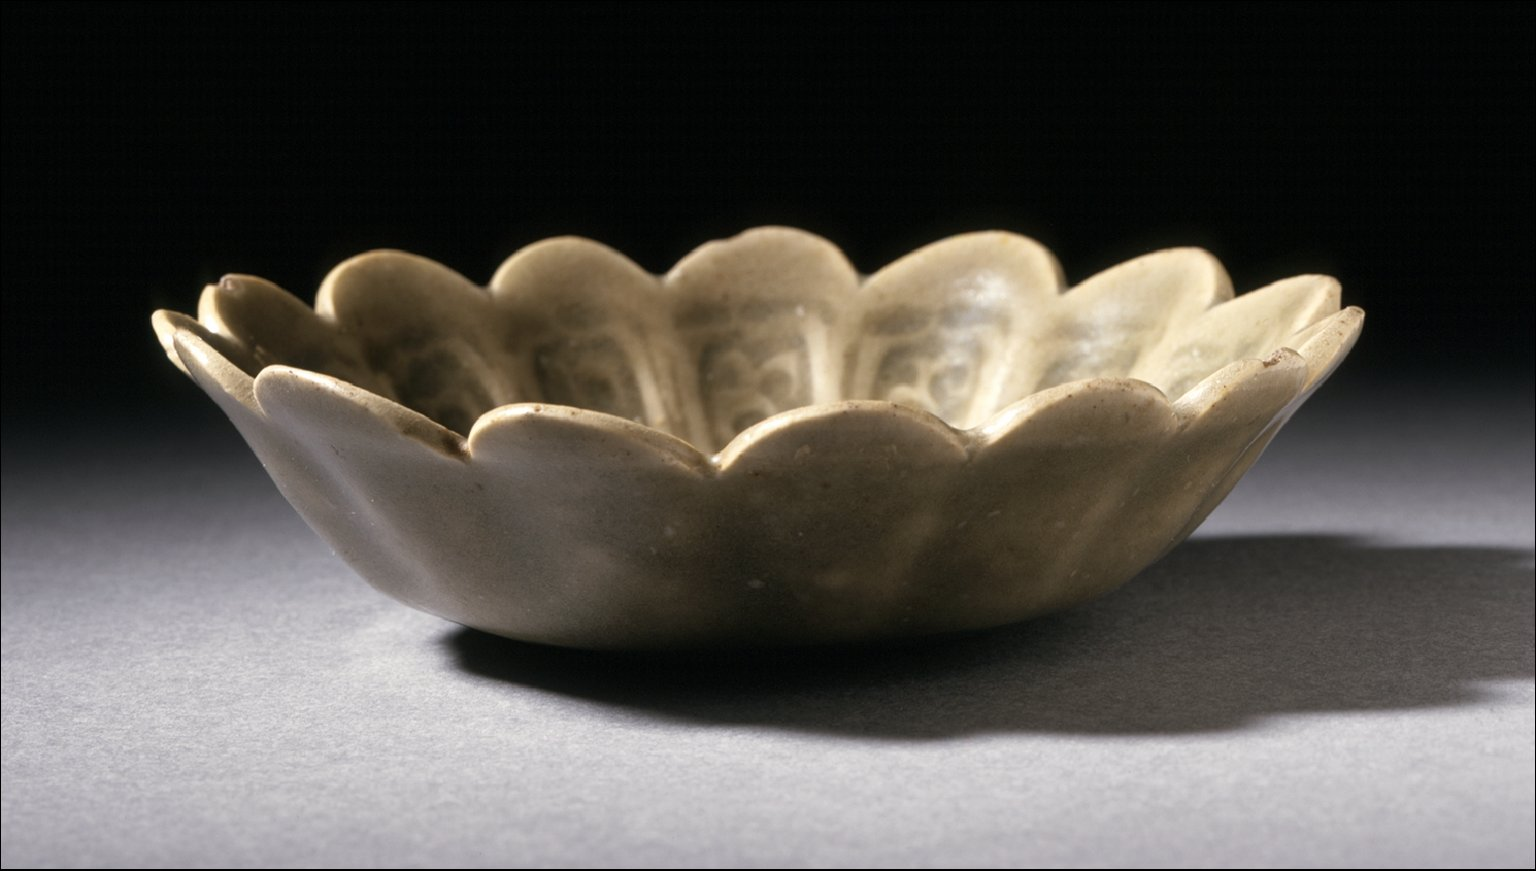 Bowl (Wan) in the Form of a Flower with Floral Scrolls